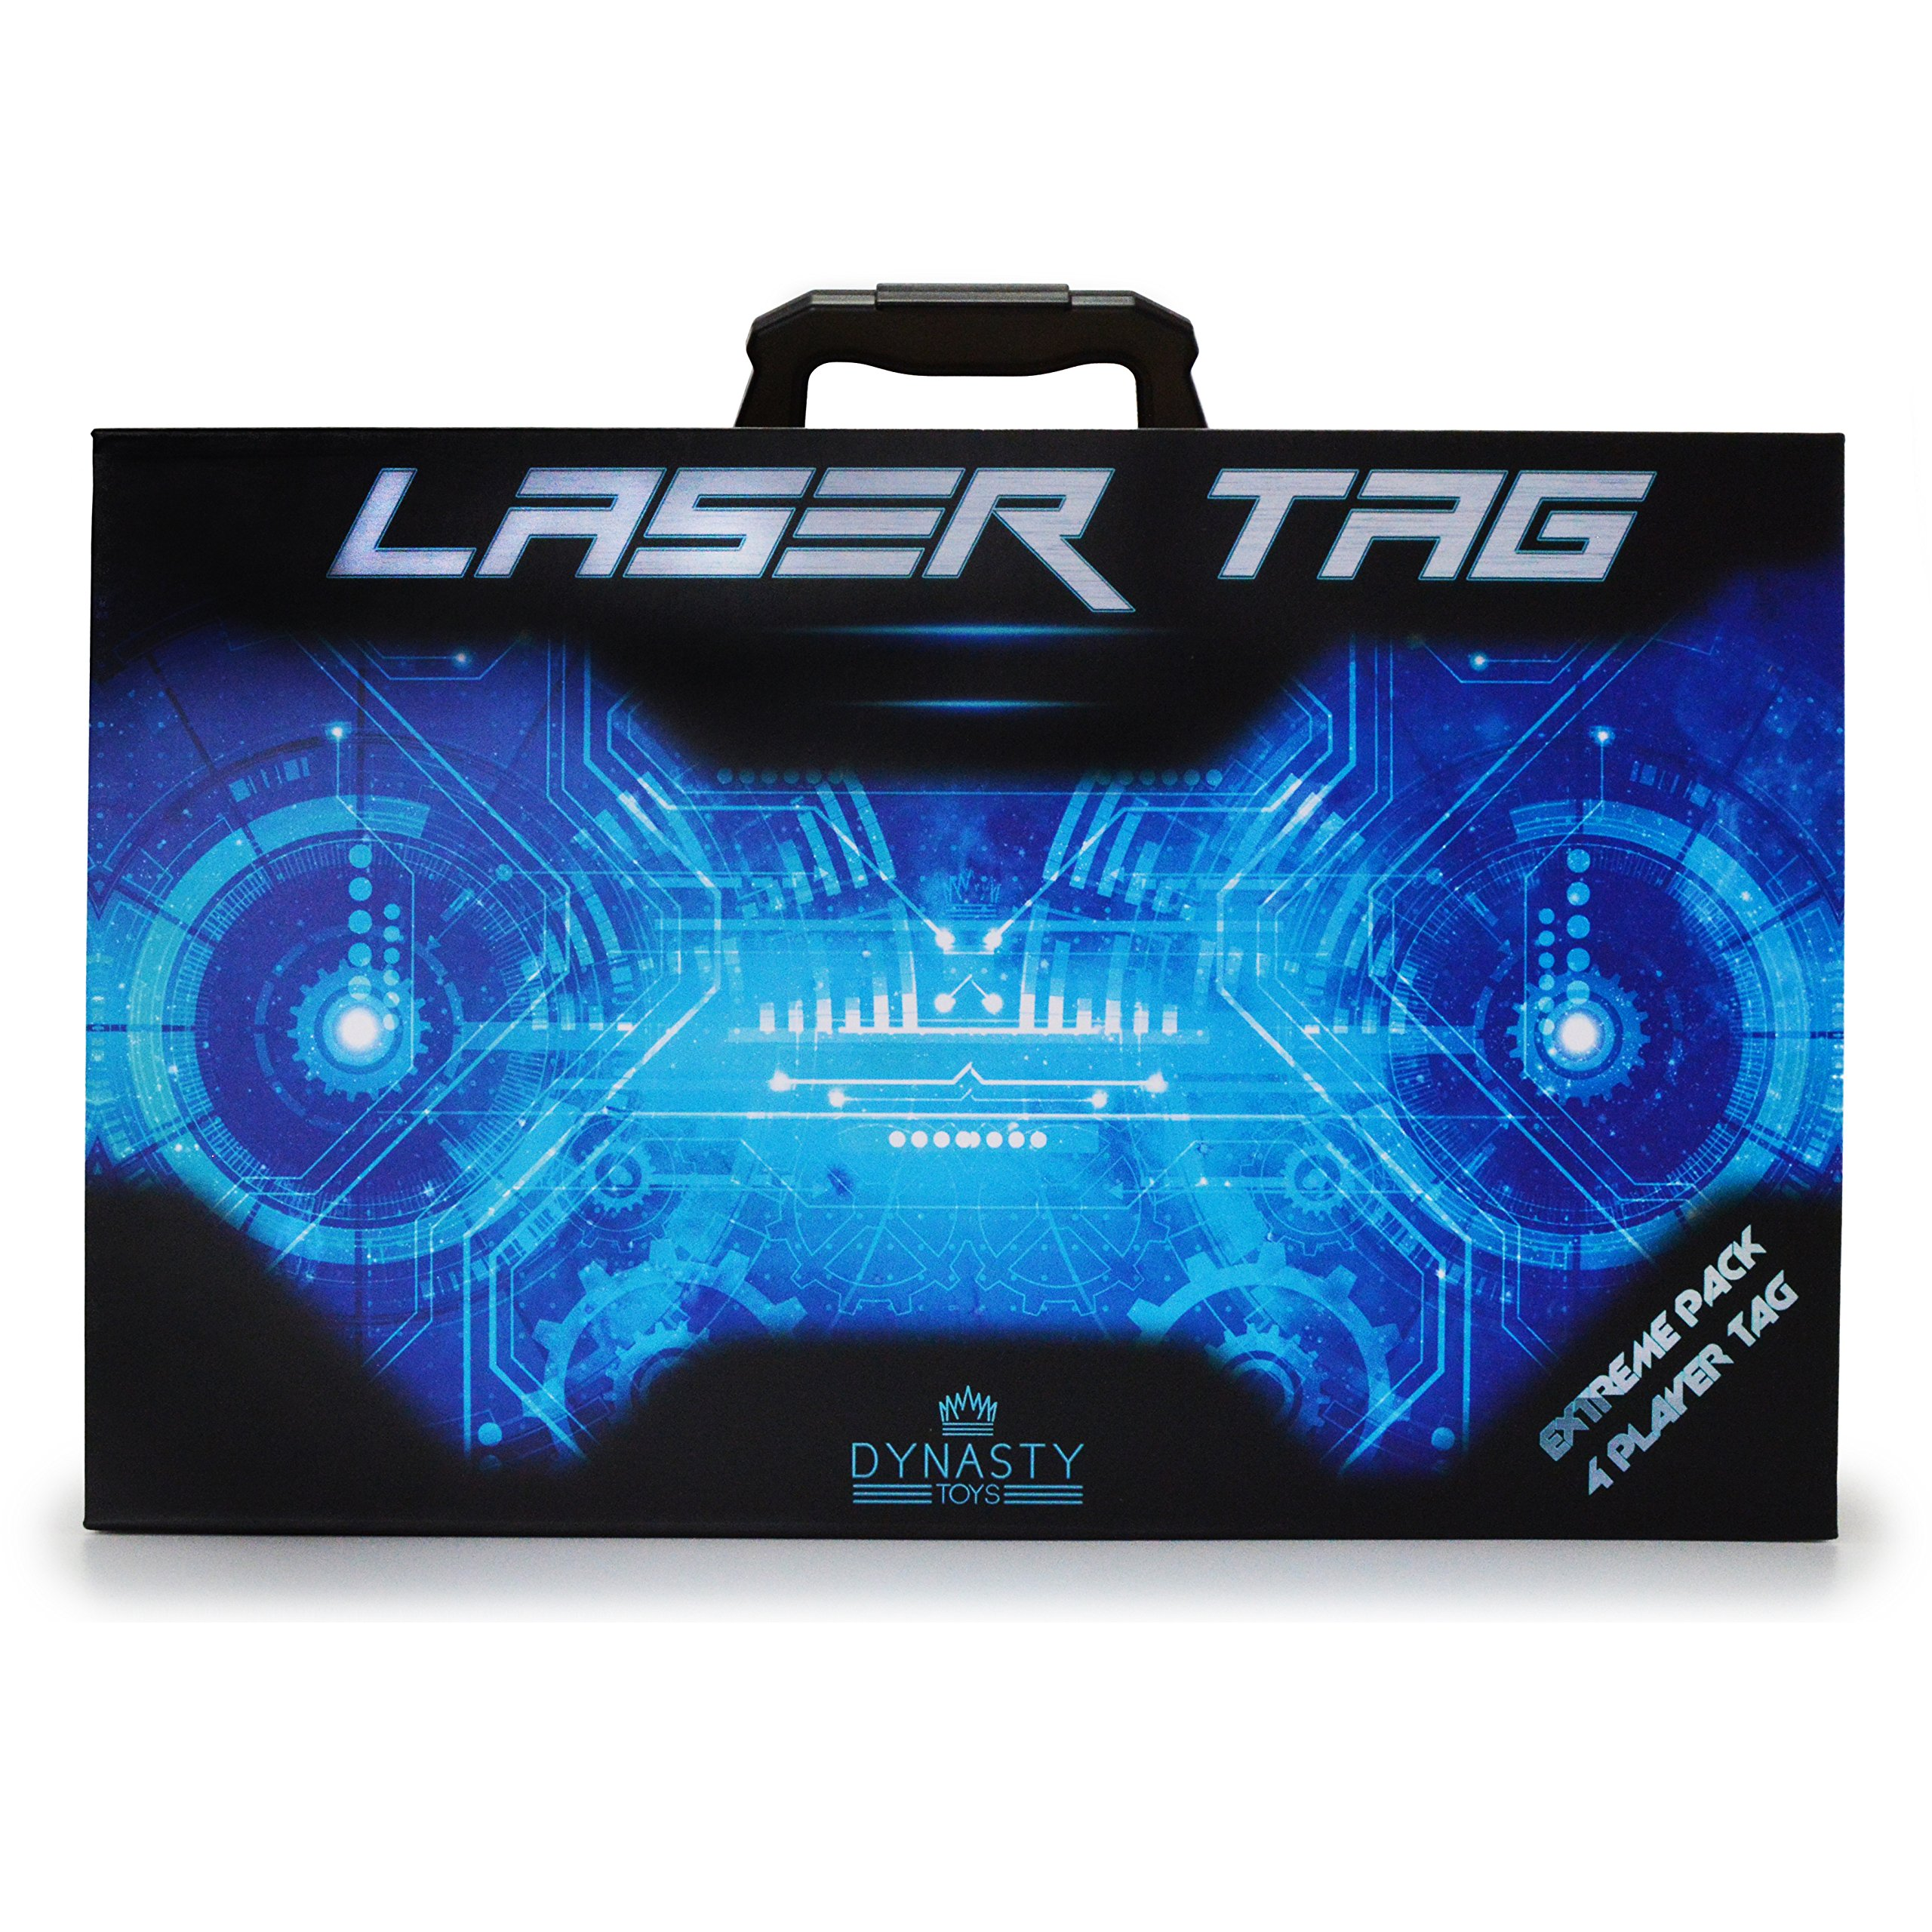 DYNASTY TOYS Laser Tag Set Toys and Carrying Case for Kids Multiplayer 4 Pack by DYNASTY TOYS (Image #5)